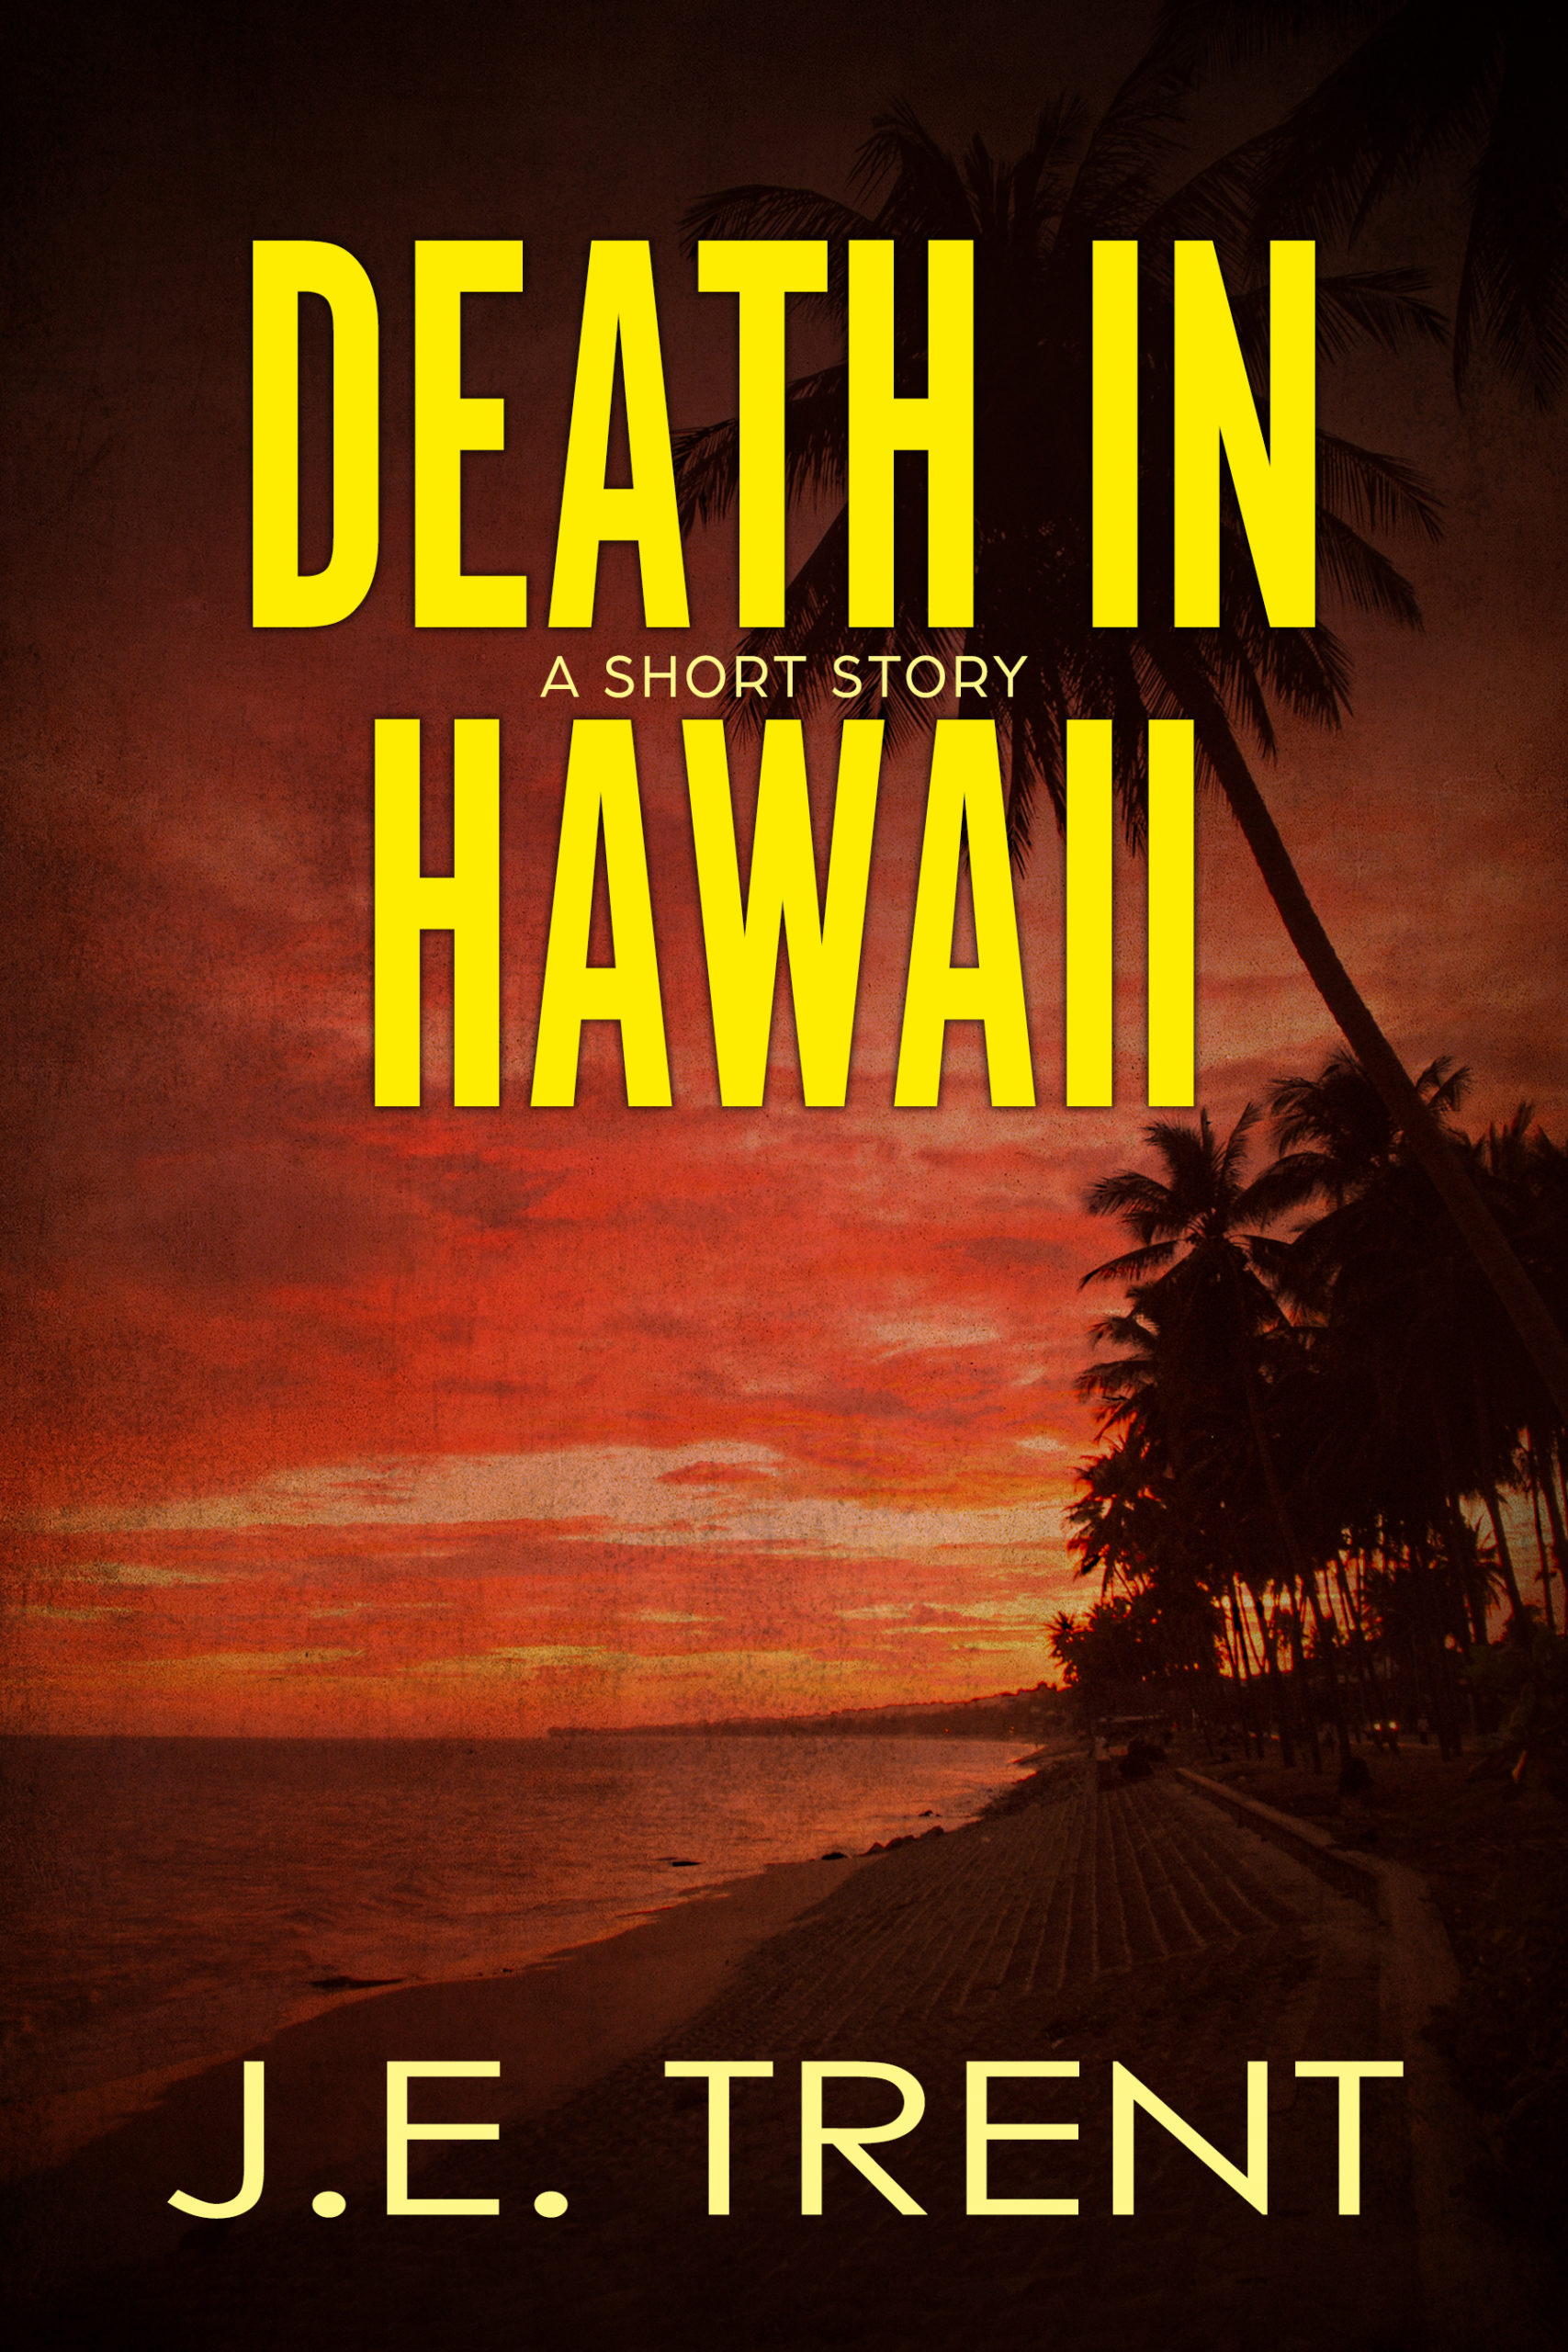 deathinhawaii